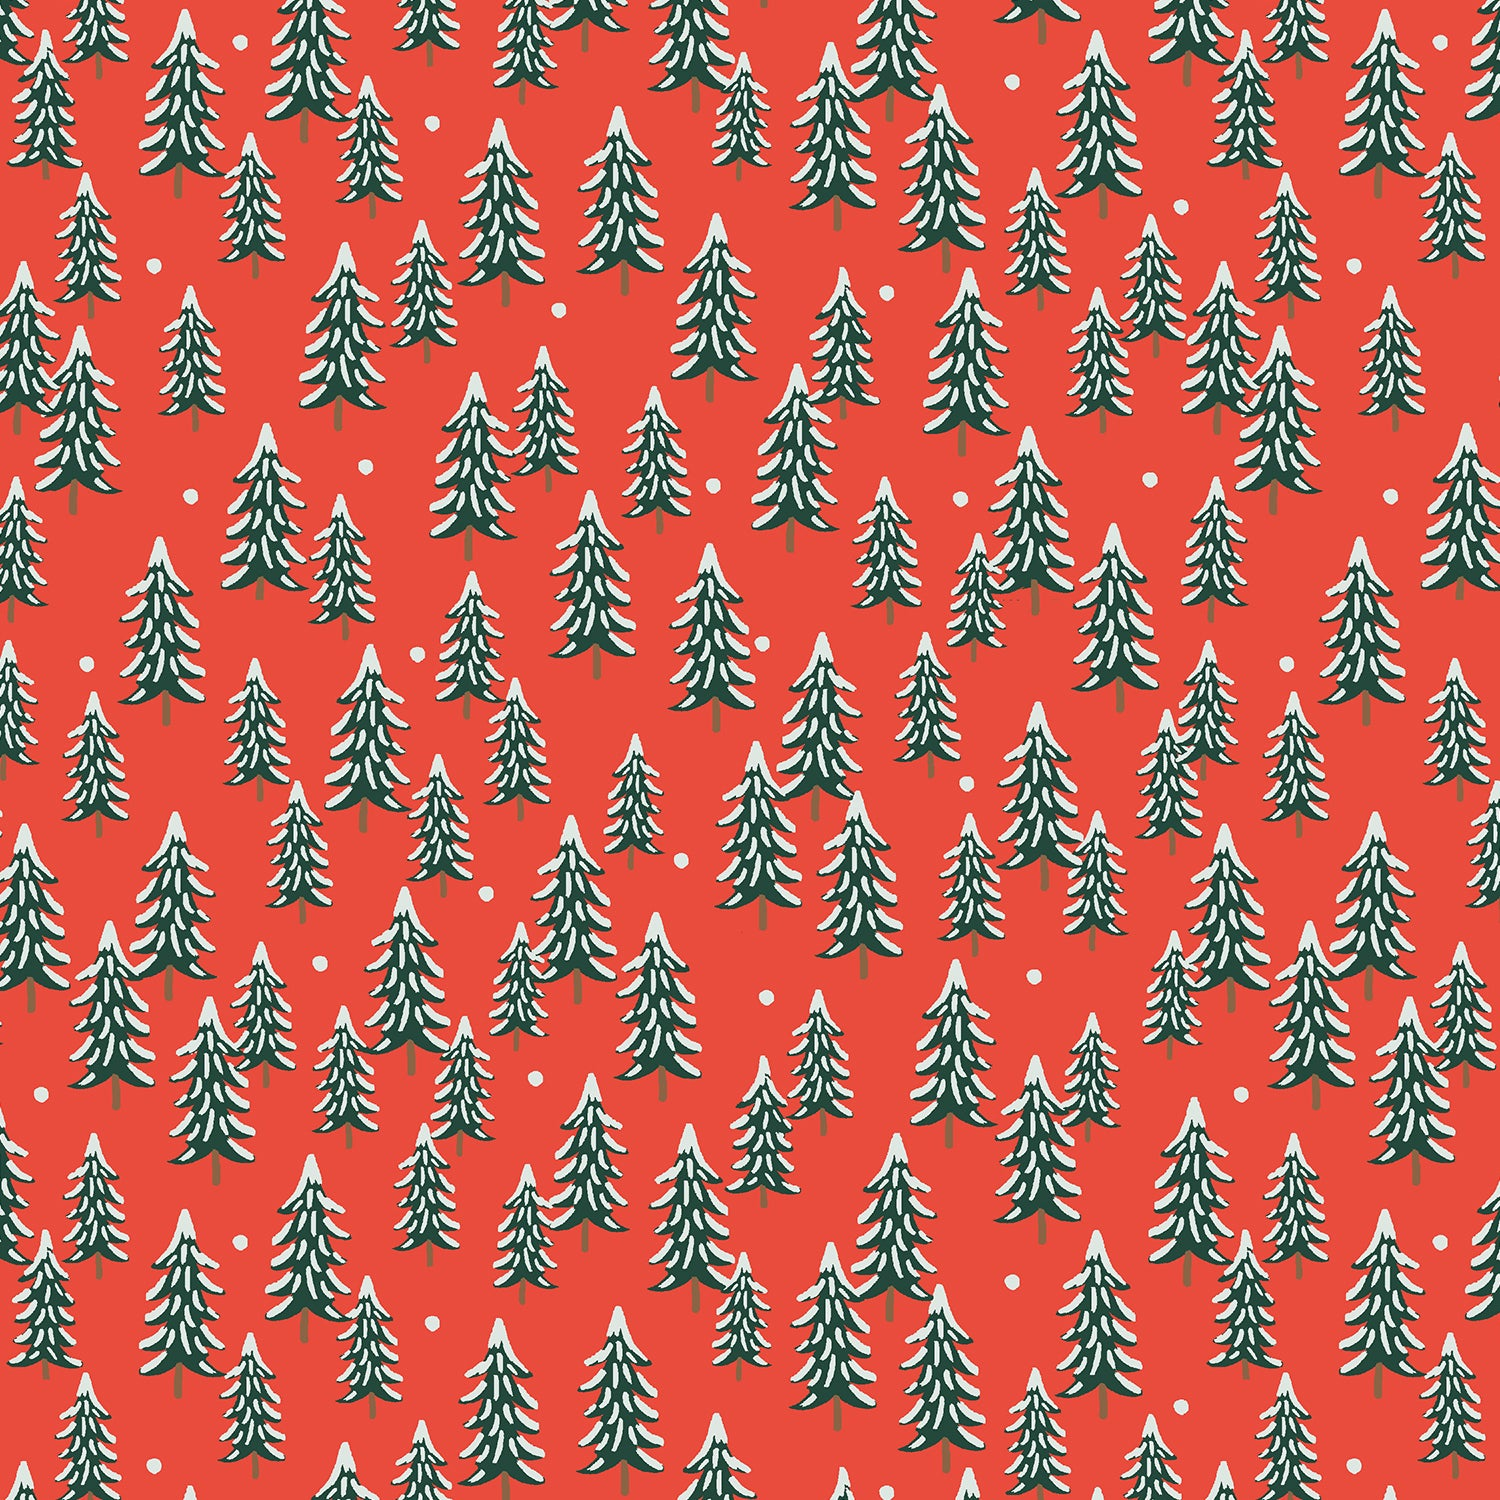 Holiday Classics - Fir Trees - Red